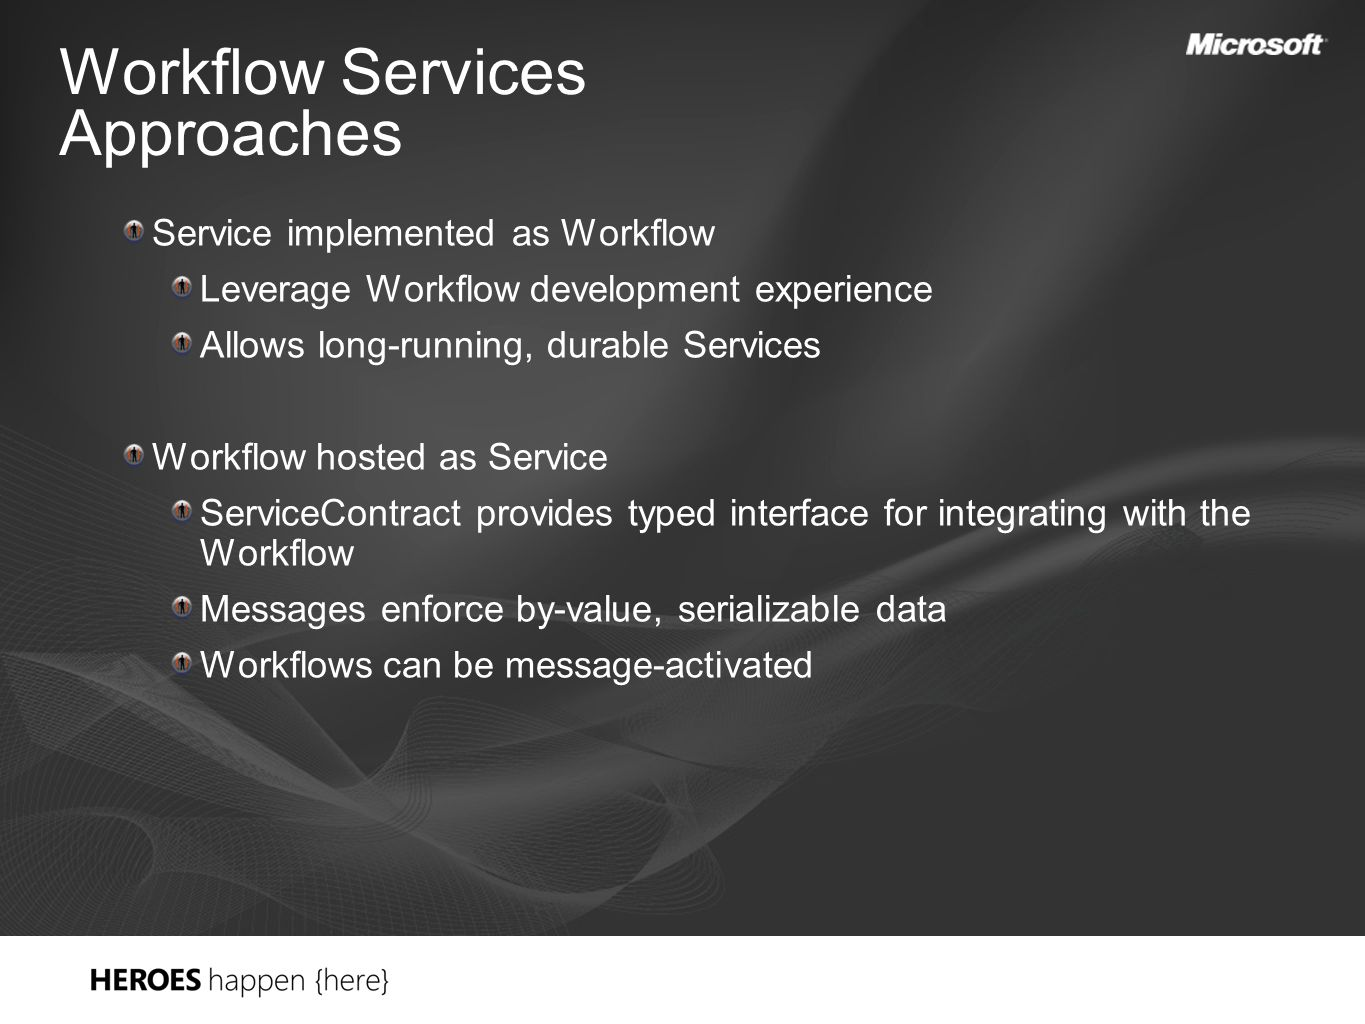 Workflow Services Approaches Service implemented as Workflow Leverage Workflow development experience Allows long-running, durable Services Workflow hosted as Service ServiceContract provides typed interface for integrating with the Workflow Messages enforce by-value, serializable data Workflows can be message-activated